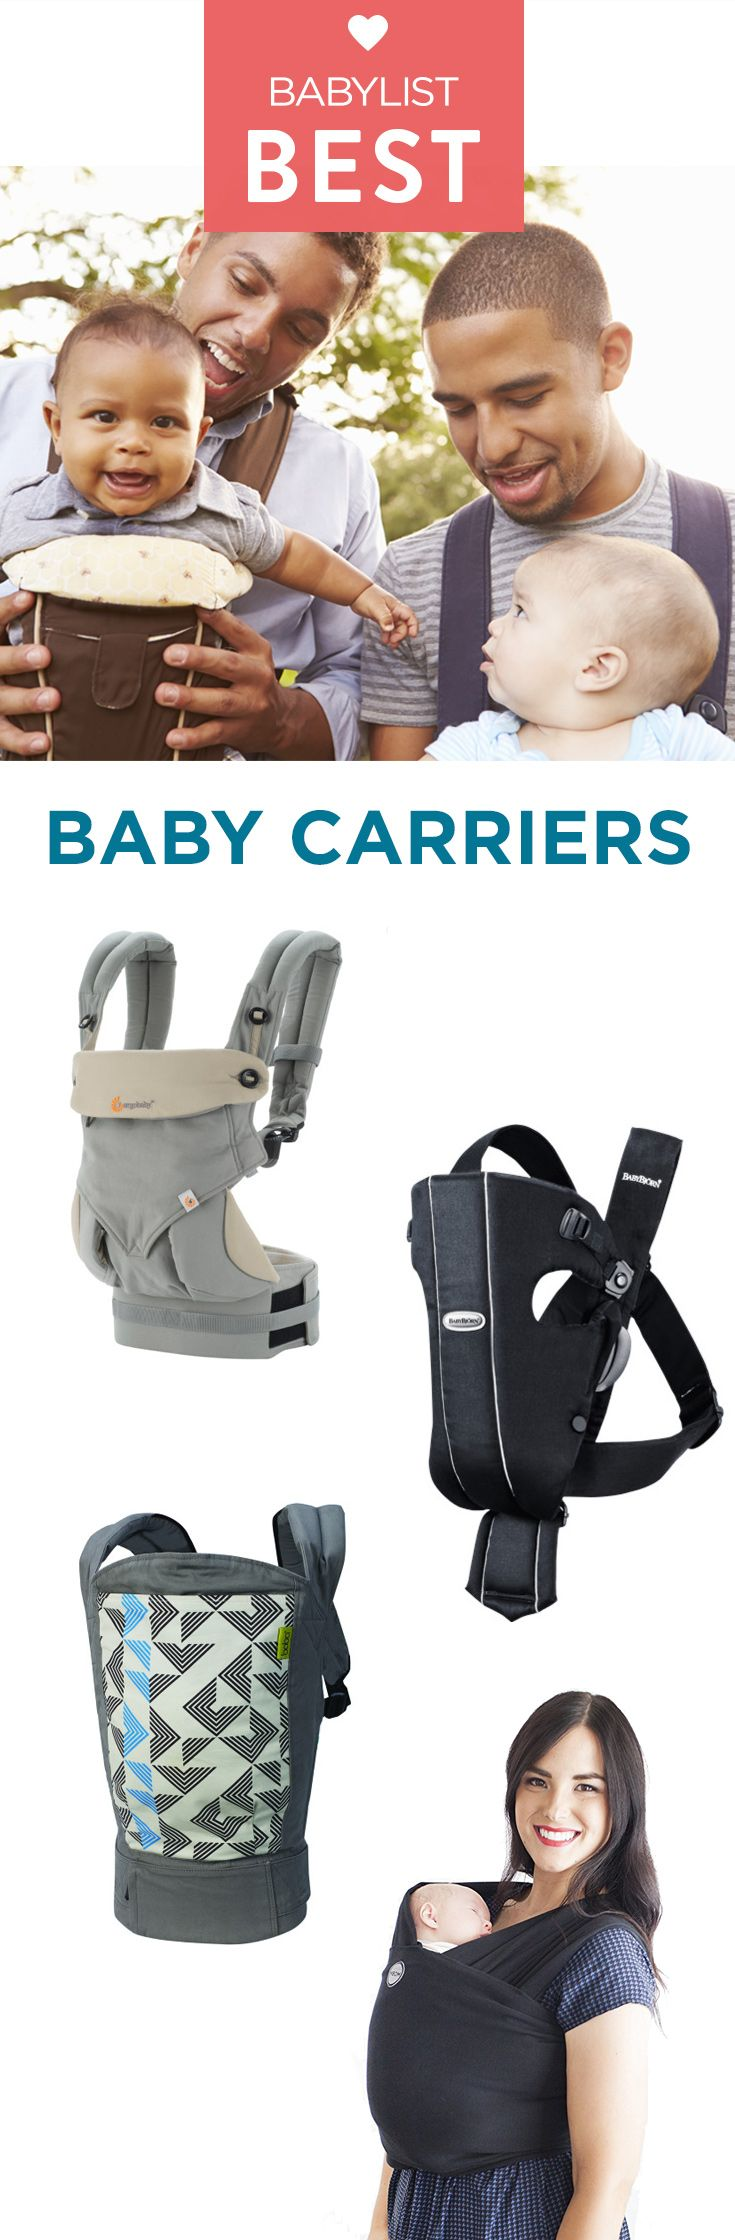 No matter how cozy a swing or bouncy seat is, babies like being cradled in your arms best. But toting your love around all day isn't really feasible unless you have arms of steel, and a bunch of minions to do your daily tasks. That's where a baby carrier comes in handy.